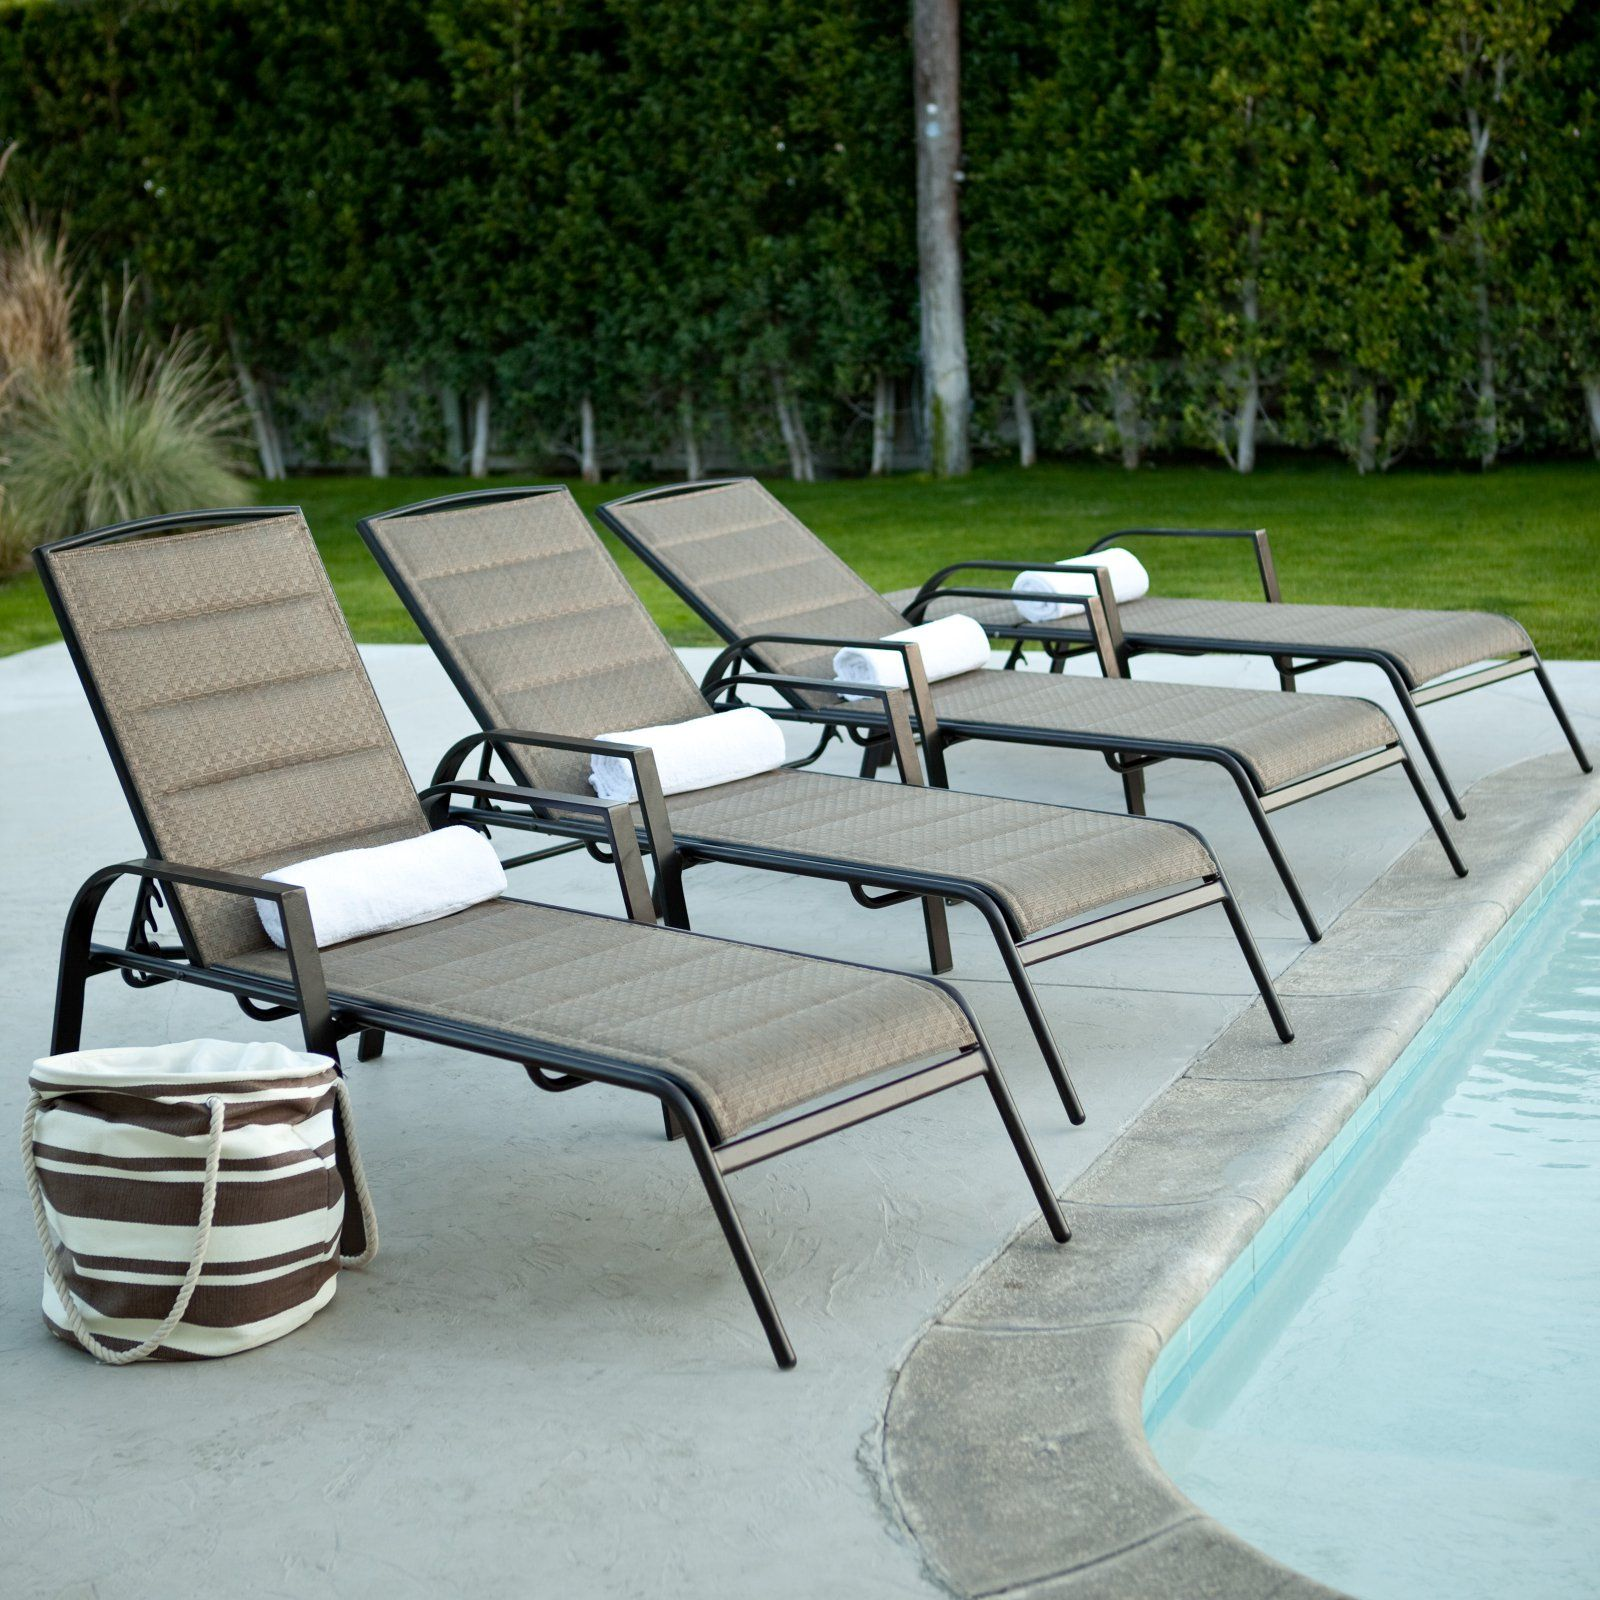 Outdoor Coral Coast Del Rey Padded Sling Chaise Lounges ...